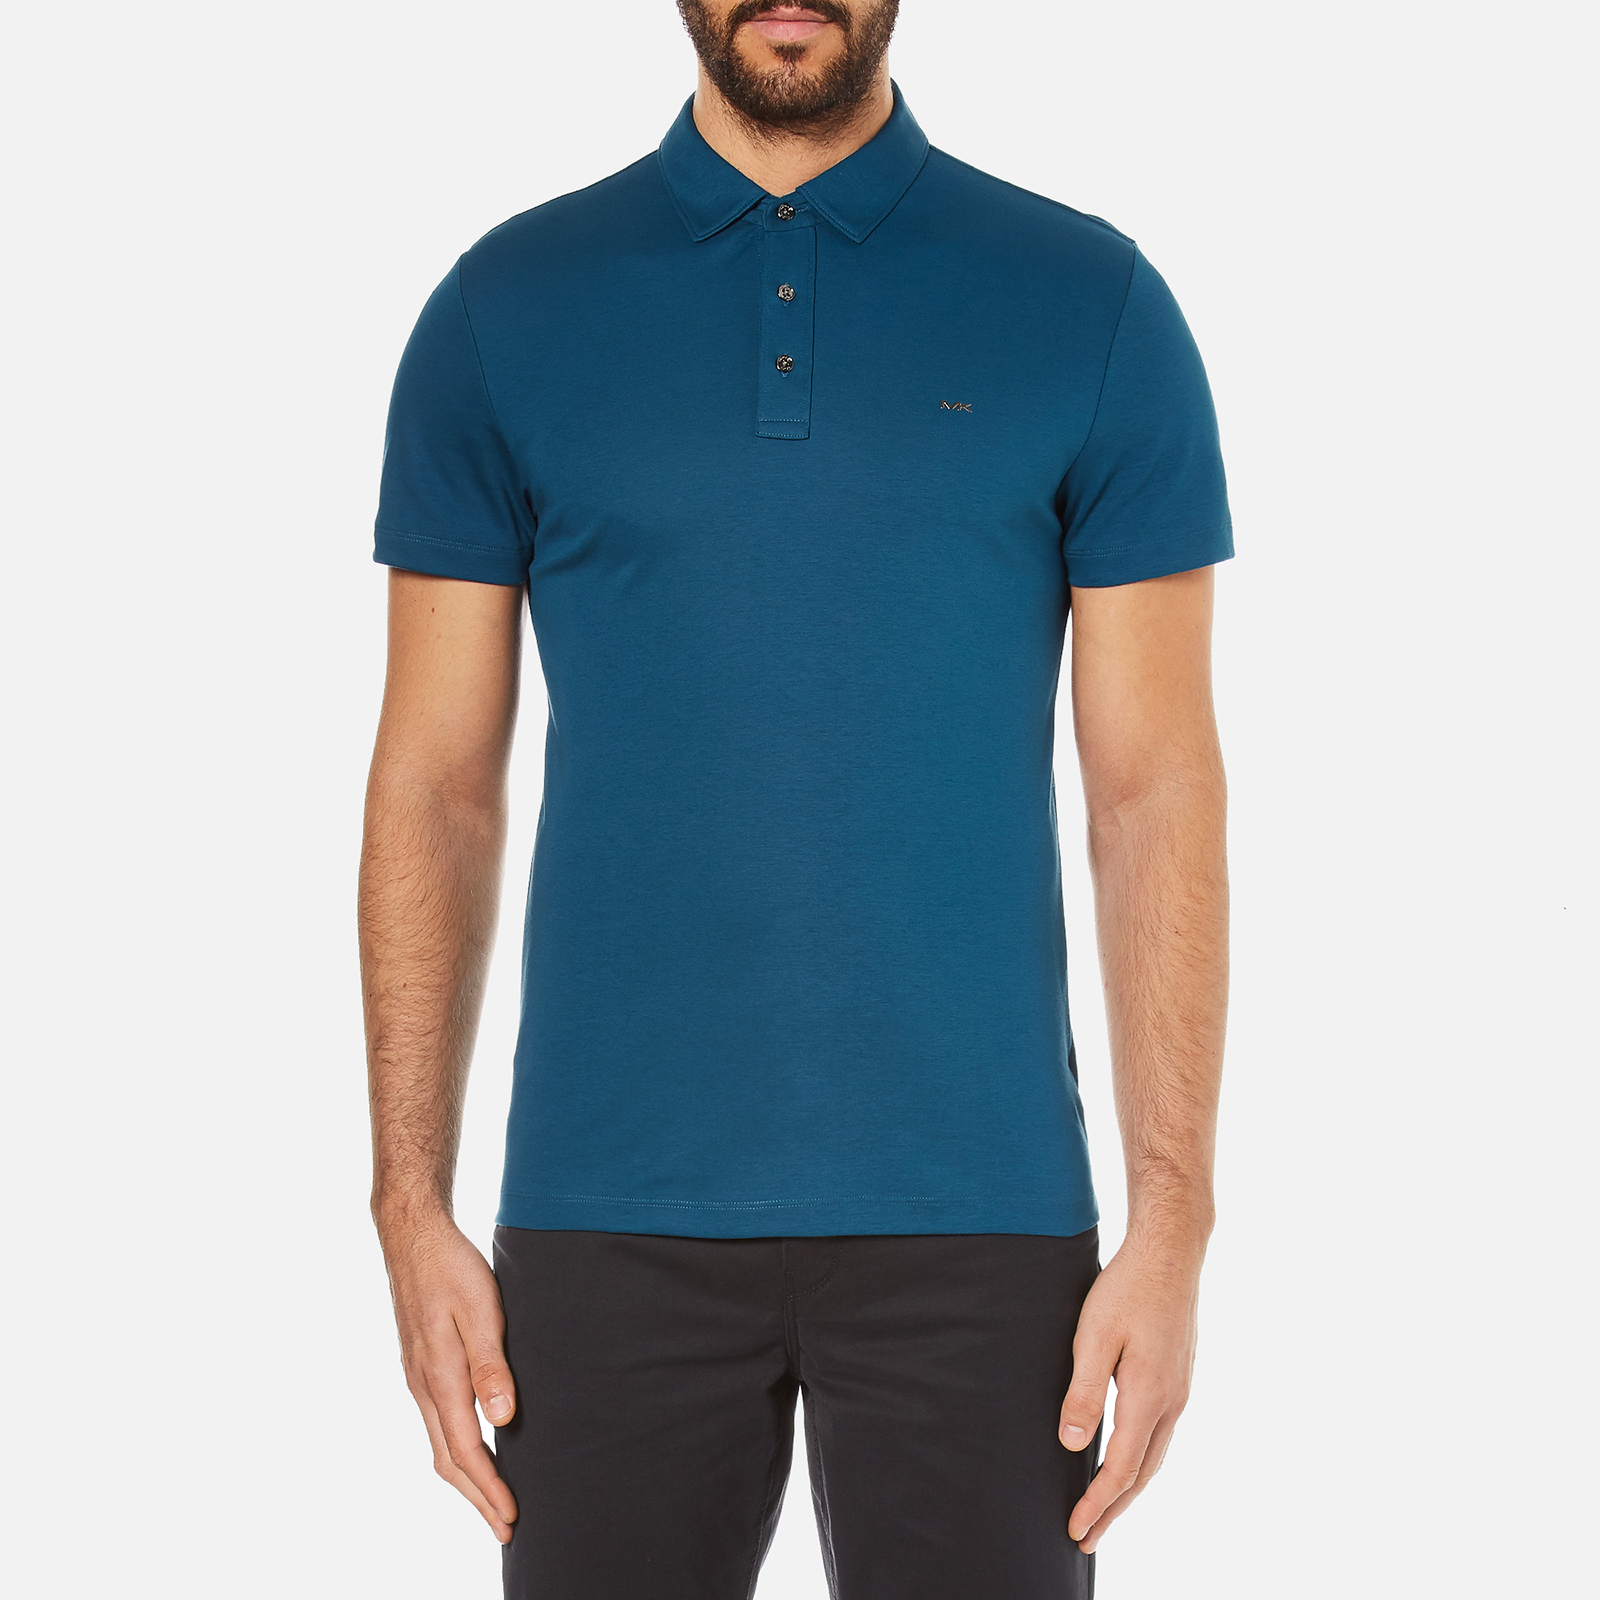 396b6a79 Michael Kors Men's Sleek MK Polo Shirt - Pacific Blue - Free UK Delivery  over £50